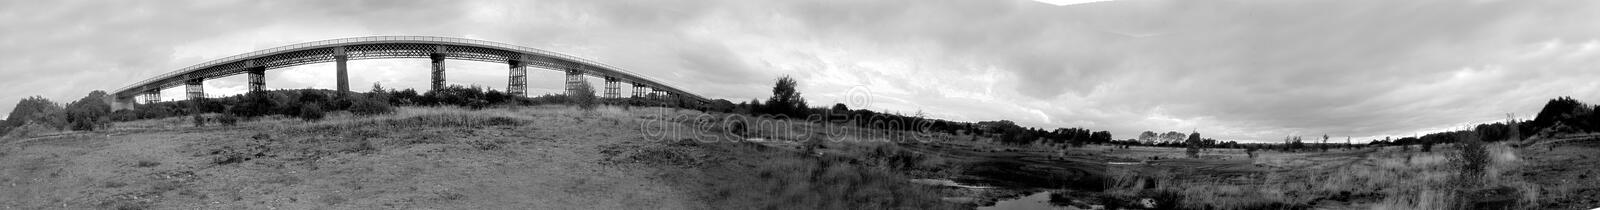 Panorama do Monochrome do viaduto de Bennerley fotografia de stock royalty free